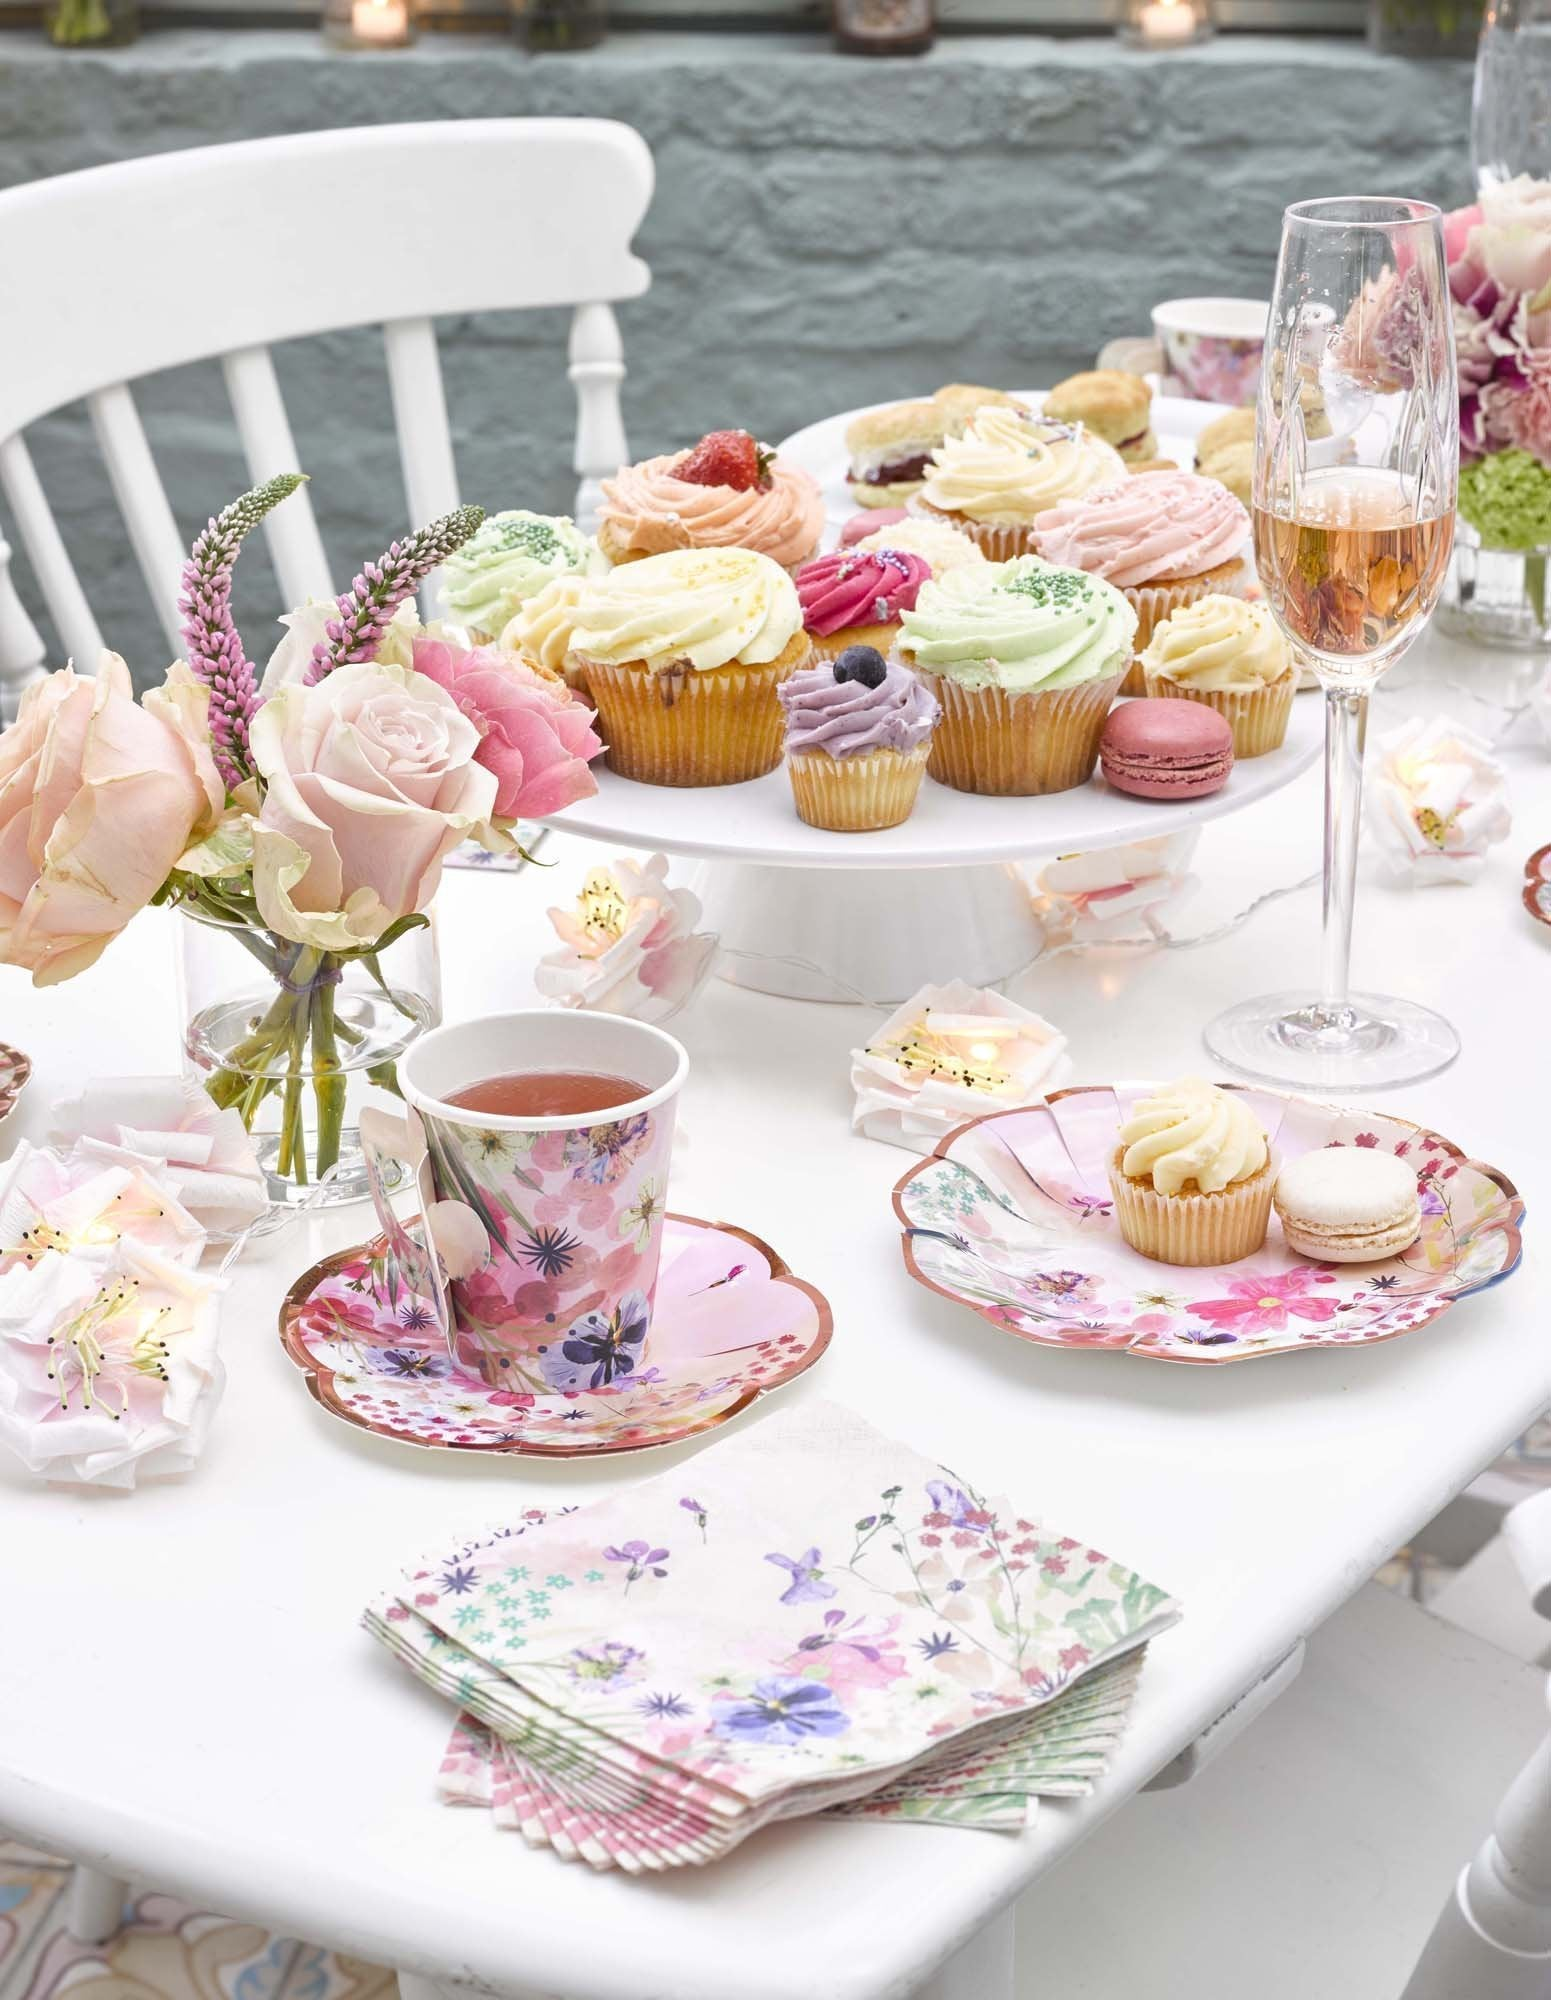 Blossom Girls Paper Plate (12pcs) (Add to Your Tea Set)